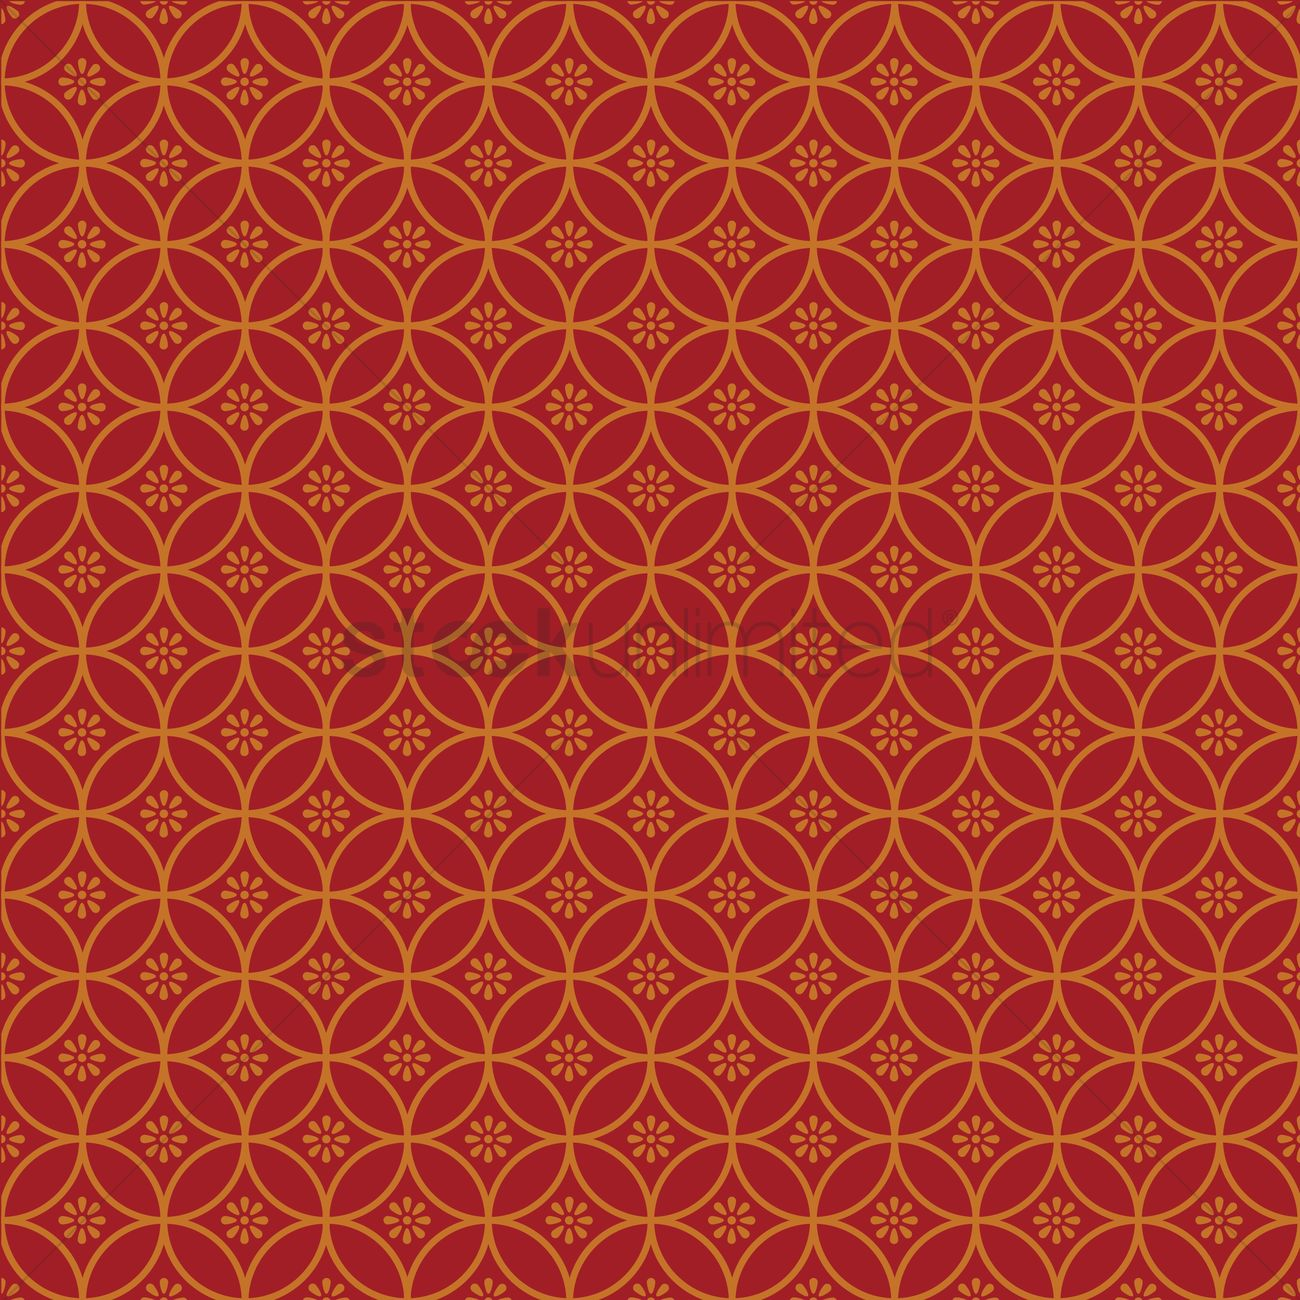 Chinese pattern background vector image 1577044 for Chinese vector